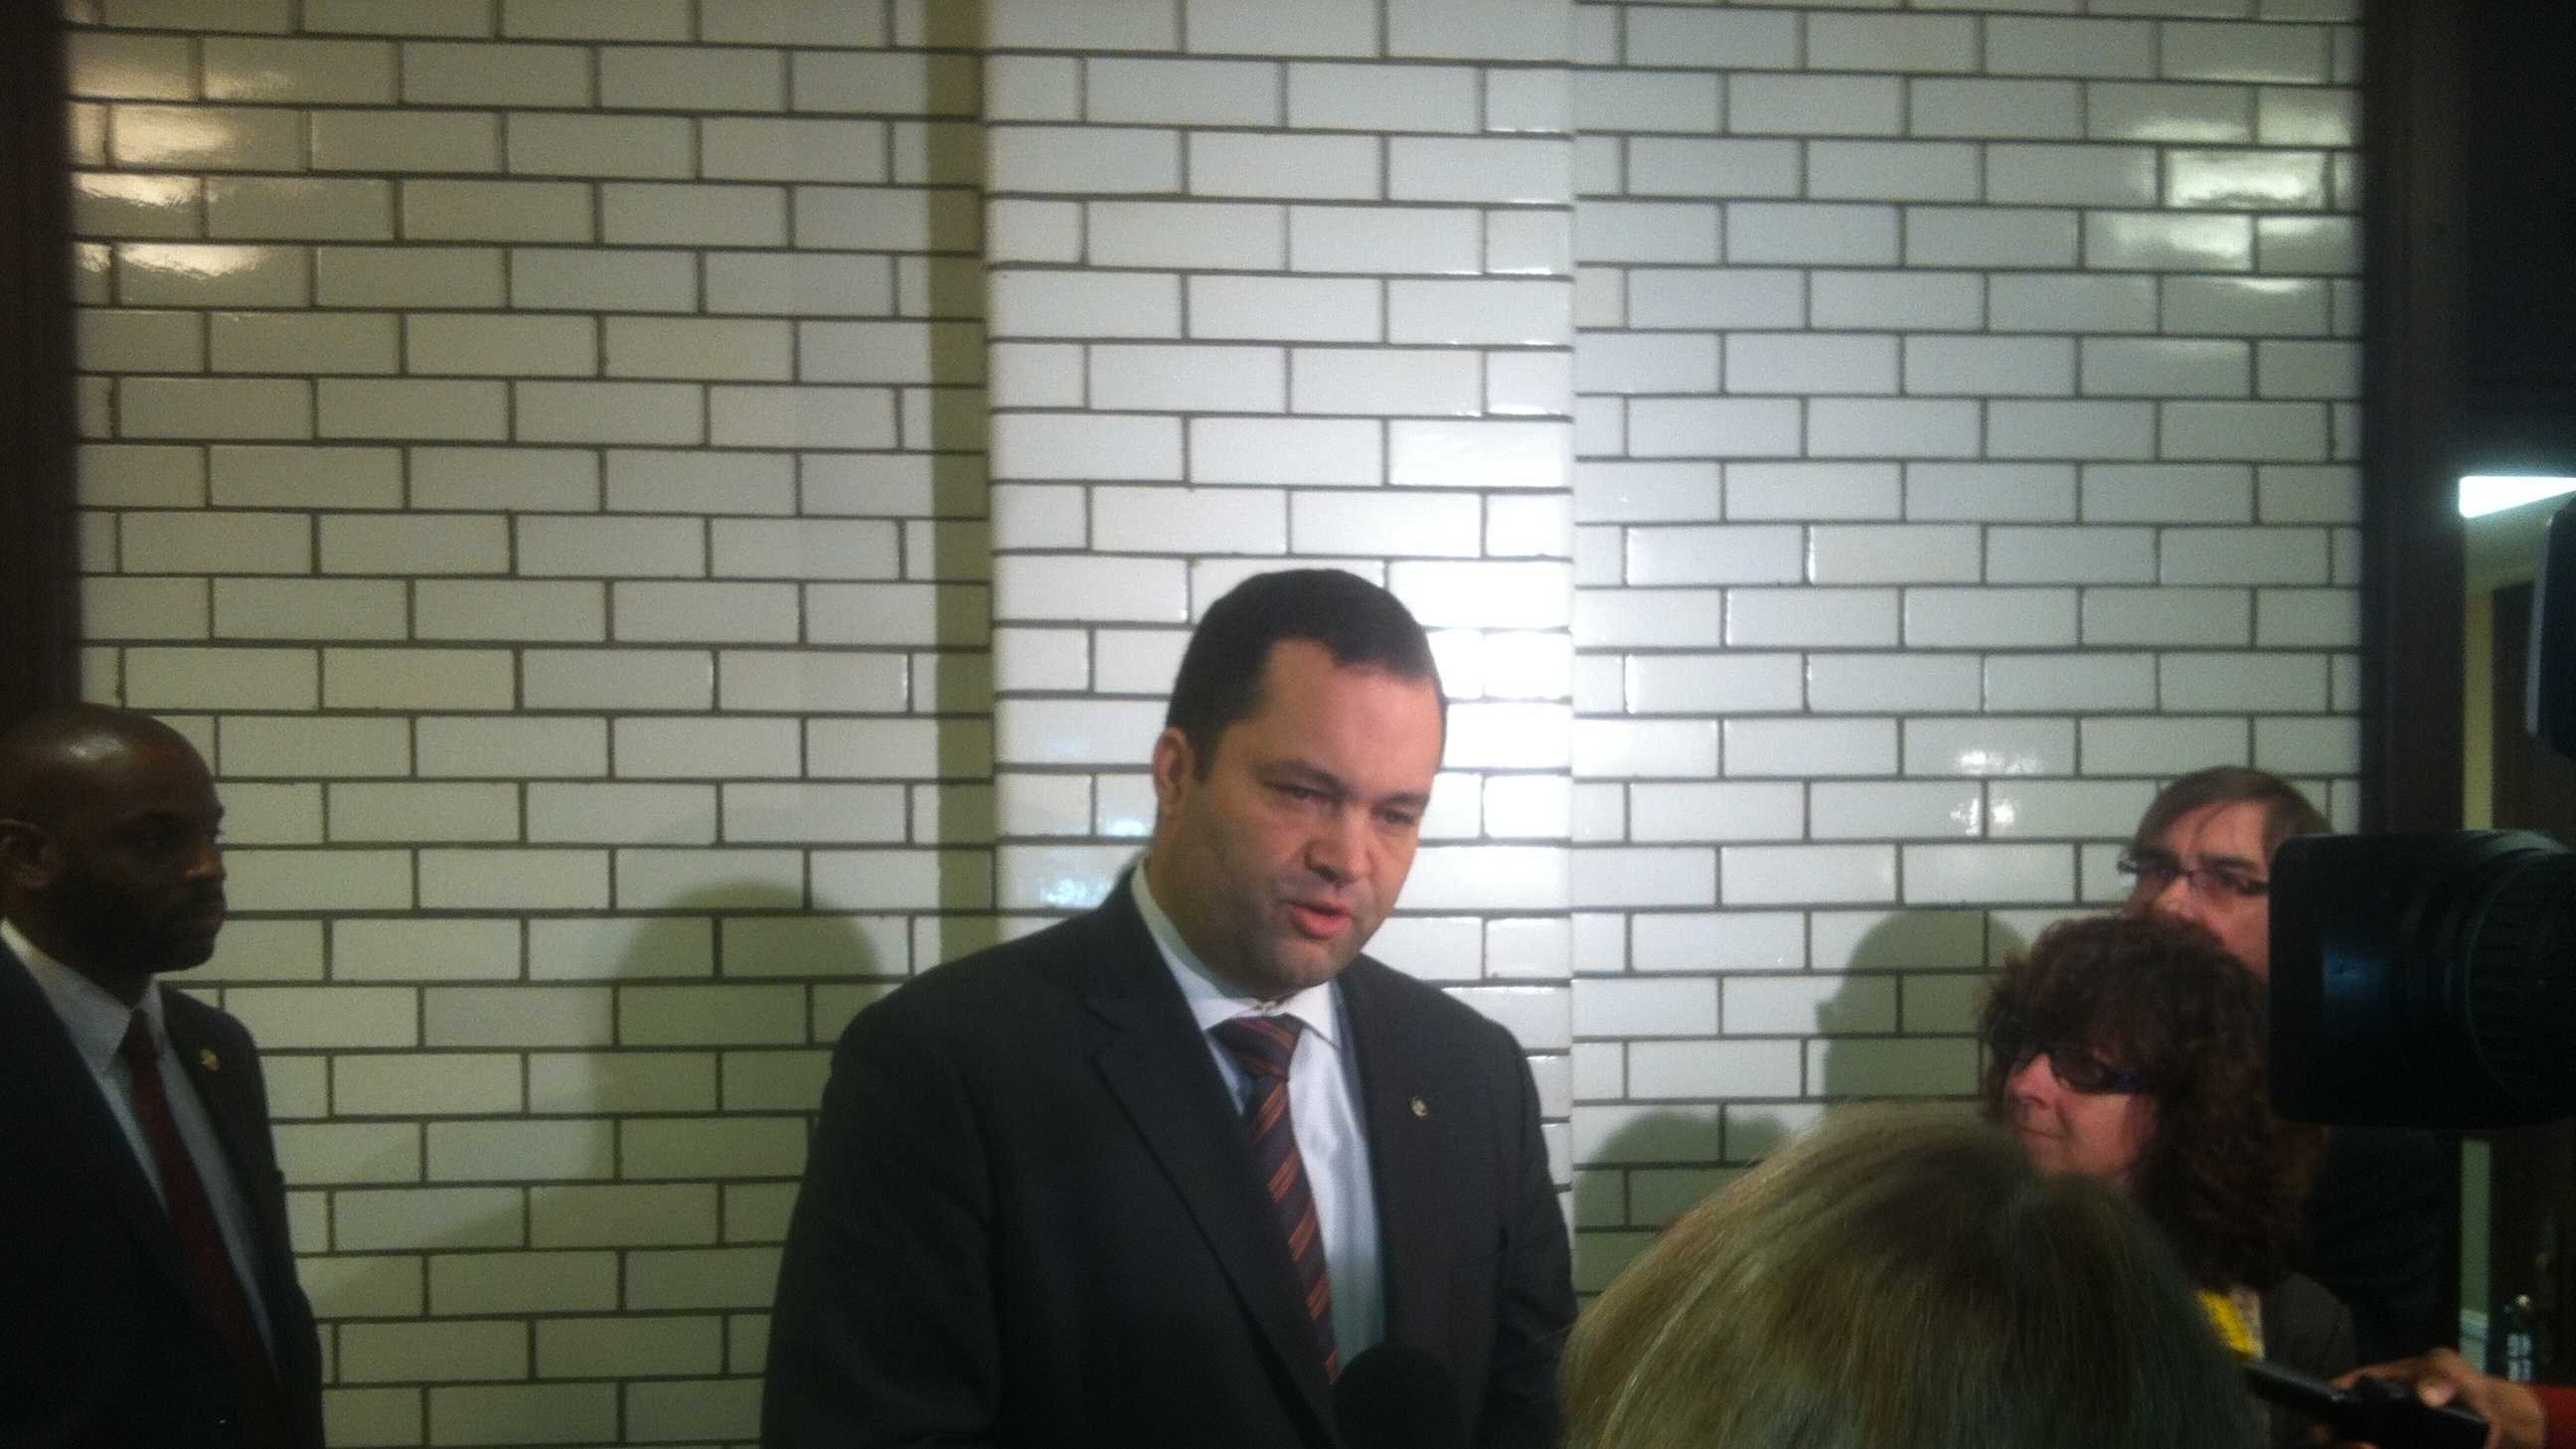 NAACP President and CEO Benjamin Jealous